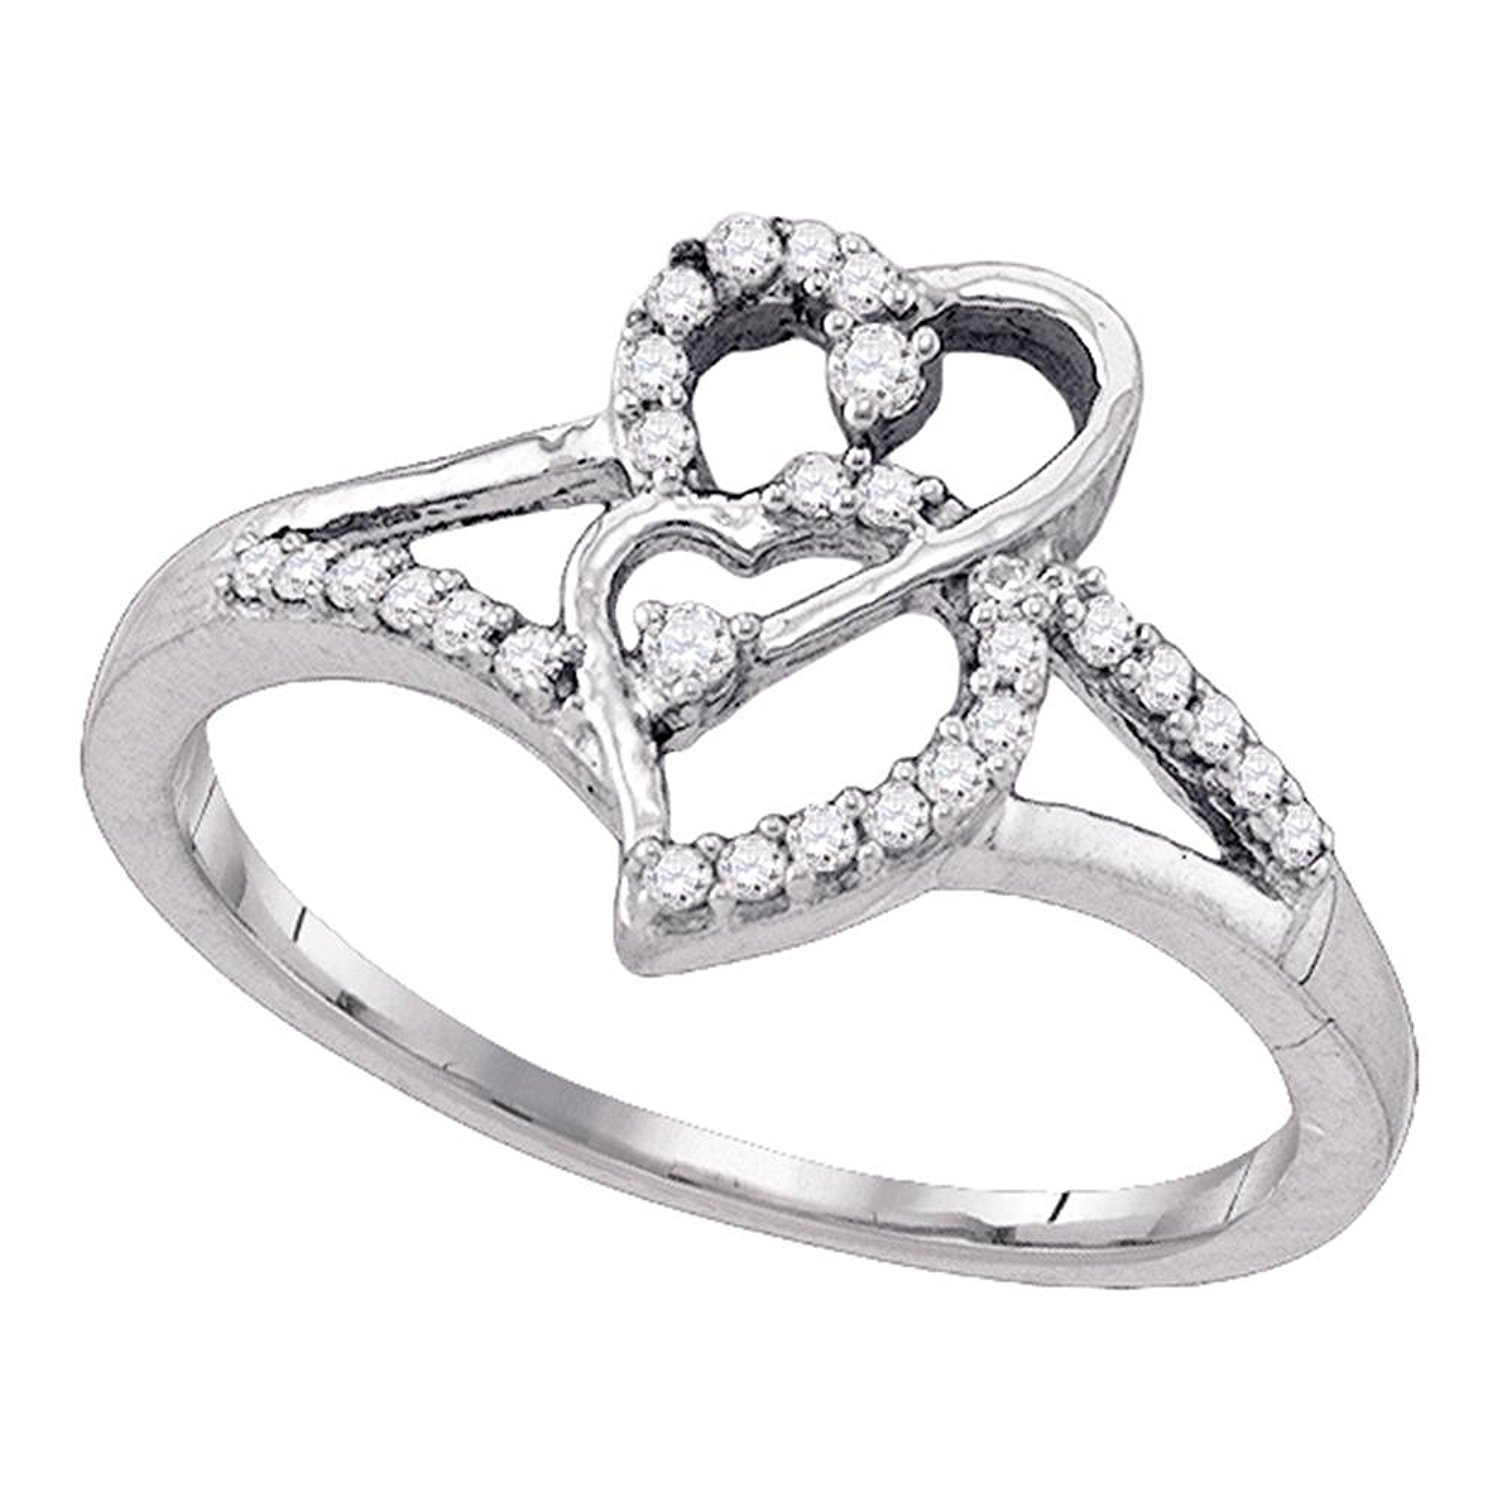 KATARINA Diamond Bypass Cluster Ring in Sterling Silver 1//10 cttw, I-J, I1-I2